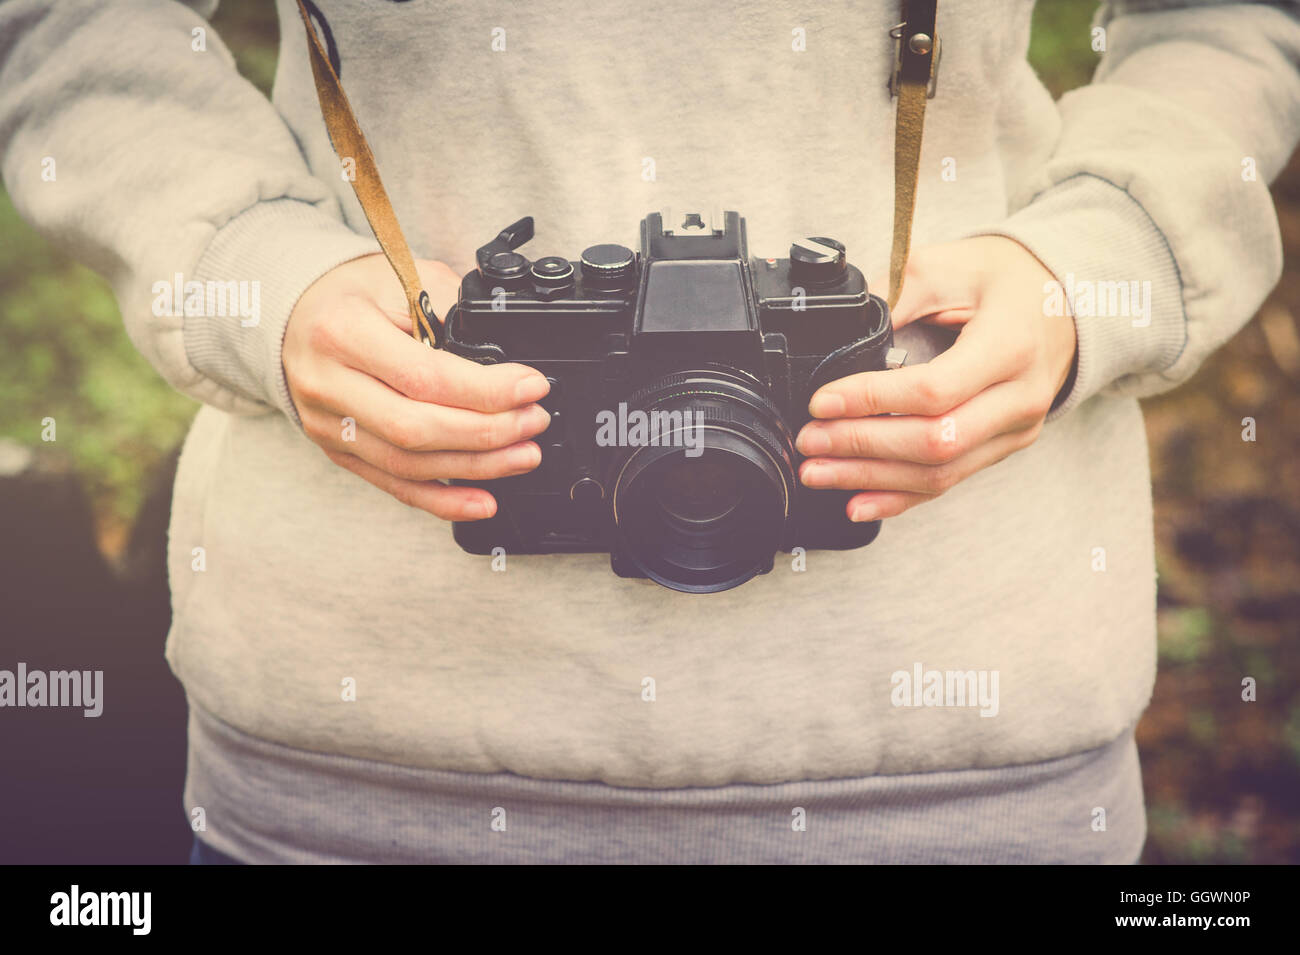 Woman hands holding retro photo camera walking outdoor Lifestyle hipster Travel concept retro colors - Stock Image